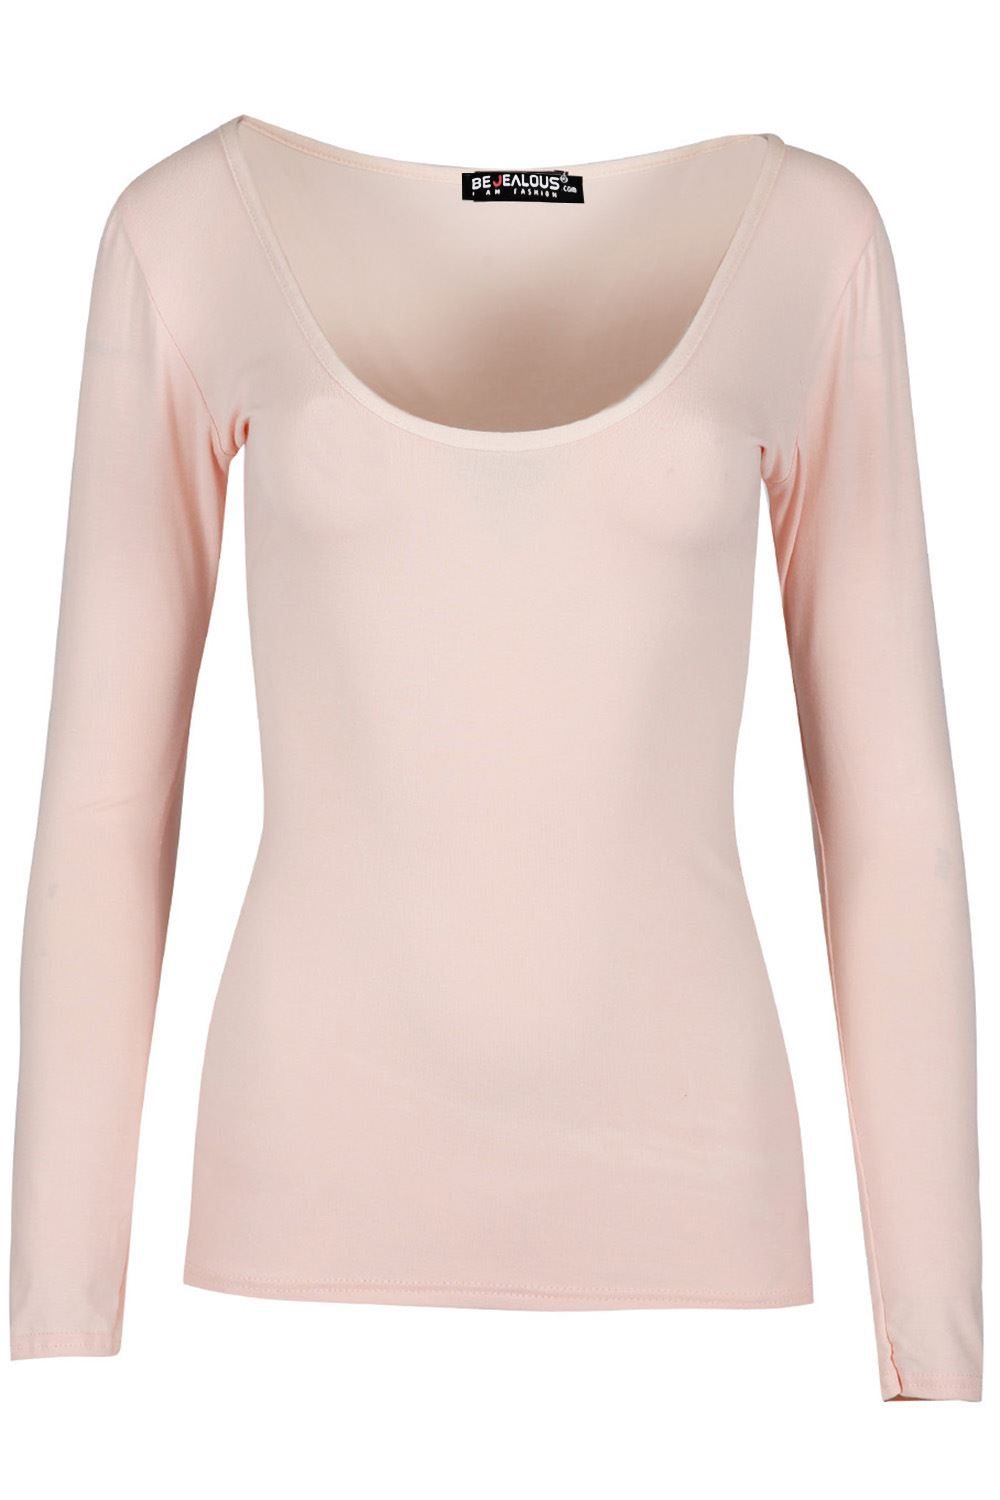 New-Womens-Ladies-Deep-V-Neck-Slim-Fit-Basic-Long-Sleeve-Stretch-Tee-T-shirt-Top